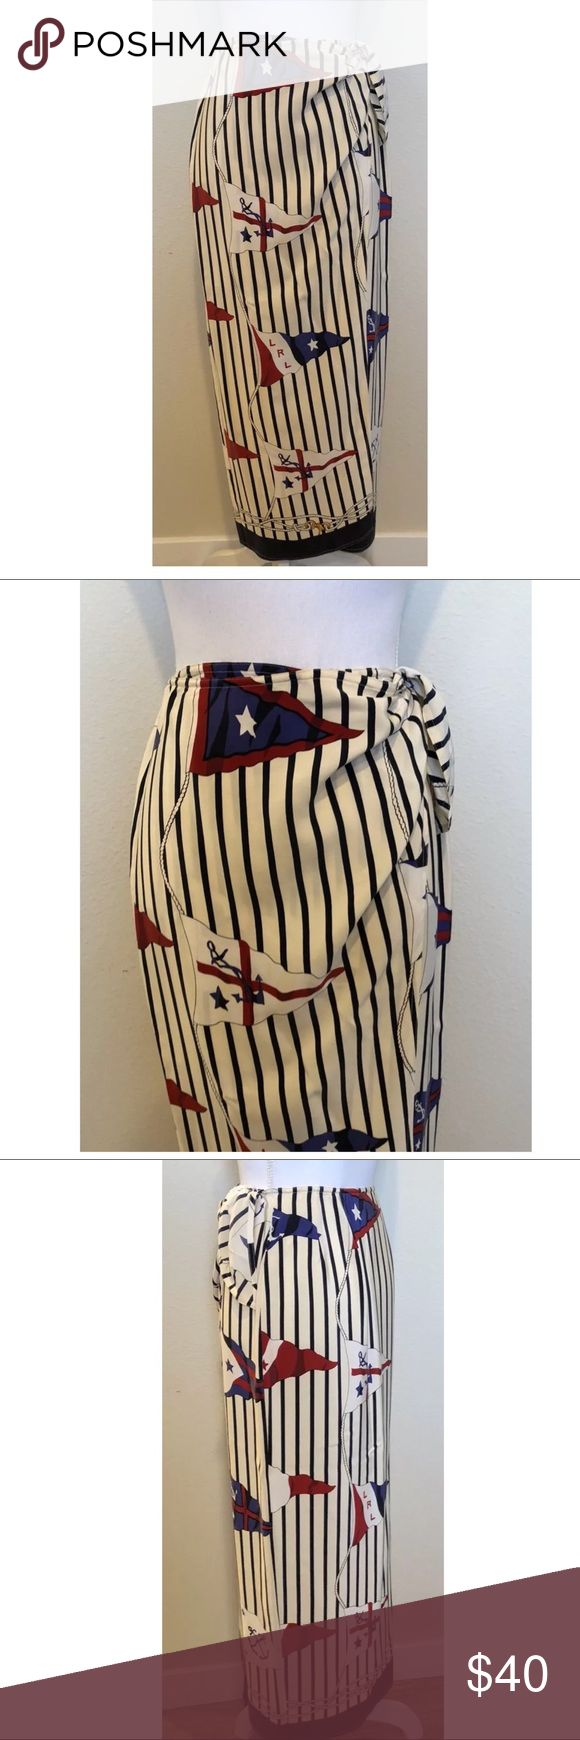 """Ralph Lauren Vintage Silk Flag/Stripe Print Skirt Ralph Lauren Vintage Silk Flag/Stripe Print Skirt ~Size 4  Measures Approximately: total length 36"""" waist across laying flat 12.5""""  Item condition/notes: Very good condition. Lauren Ralph Lauren Skirts Midi"""